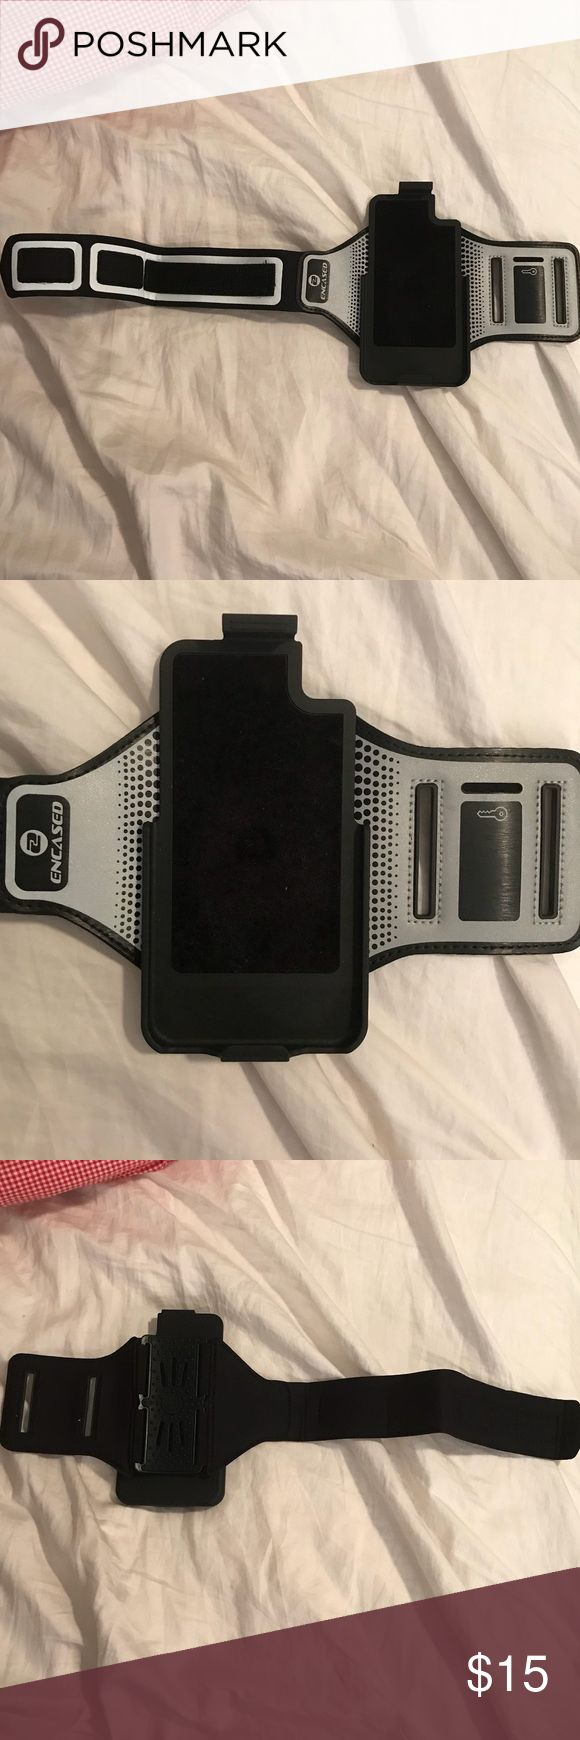 Encased Armband for iPhone6s Lifeproof Case -Brand new Encased workout armband for an iPhone 6s lifeproof case. Never got to use because my 6s broke, and I had to order a new iPhone 8.   -The band is about 12in long and has a velcro strap that is used to wrap the band to keep it in place.  -Has an additional pocket to hold a key on the side.  -Snap your iPhone 6s (with the lifeproof case on it) into place and it will stay put and hold during your workout. Easy installing and removal…